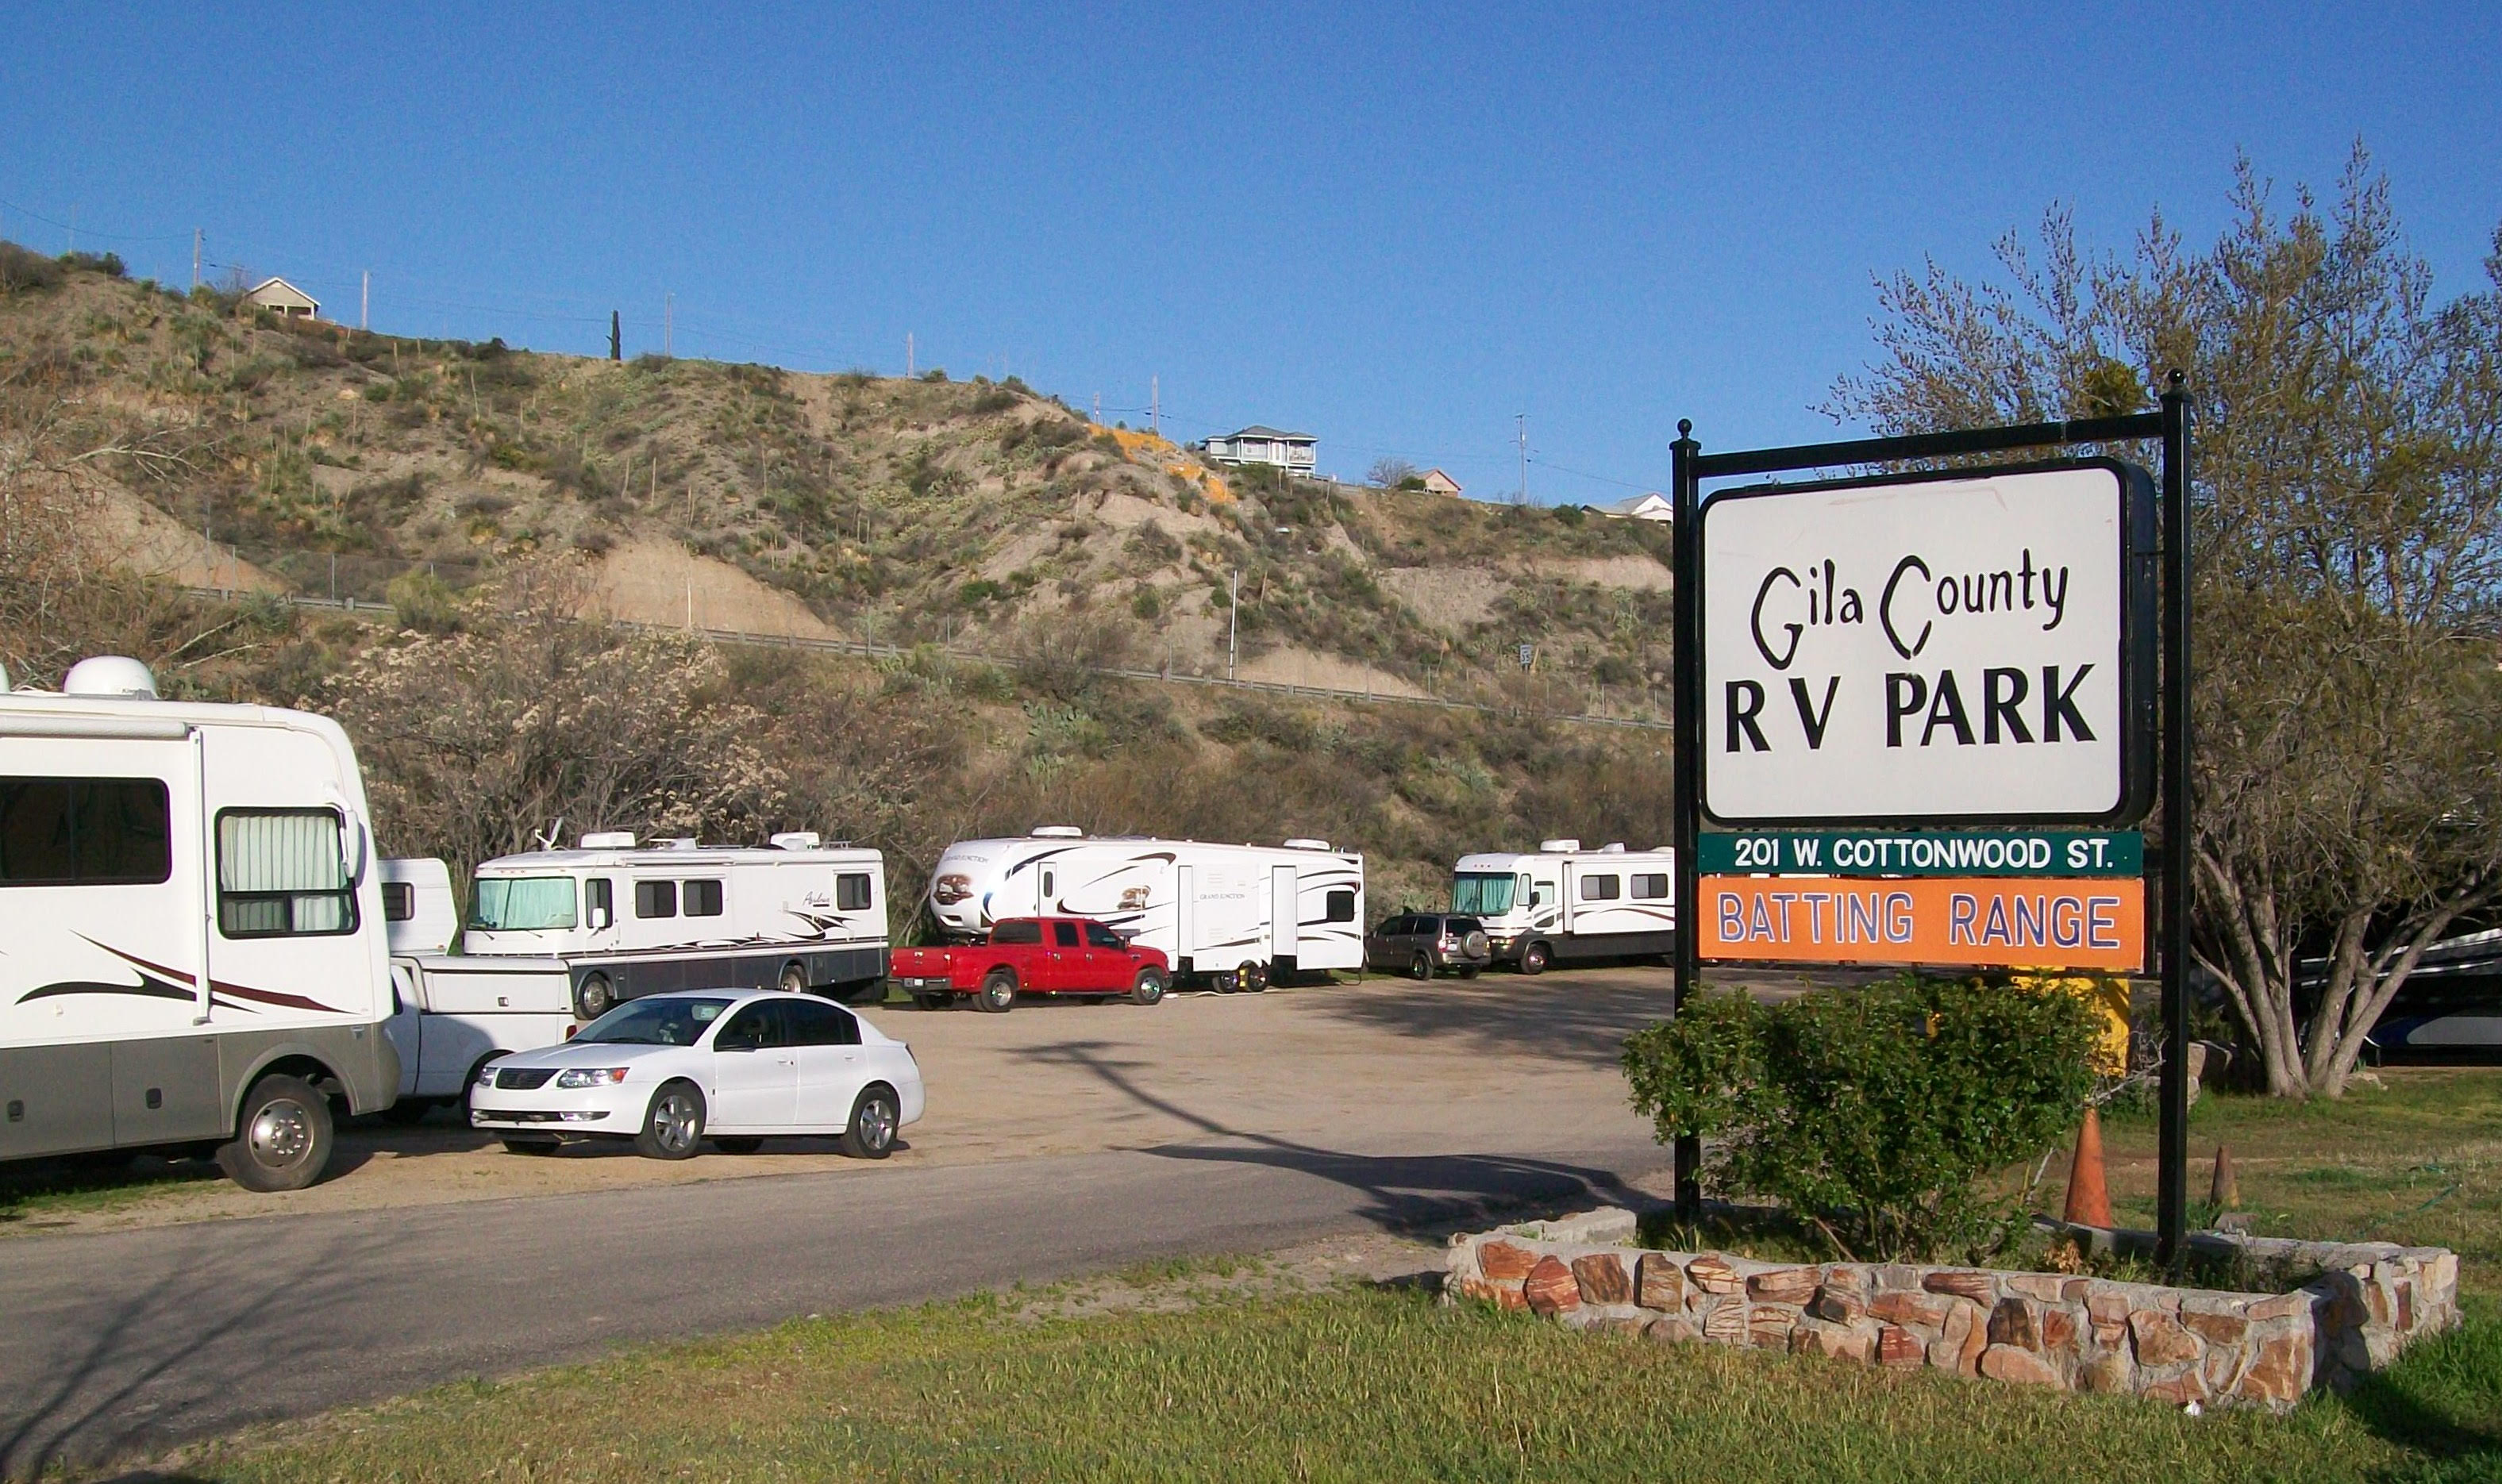 Arizona RV Park Looking For A Manager In A Tiny House